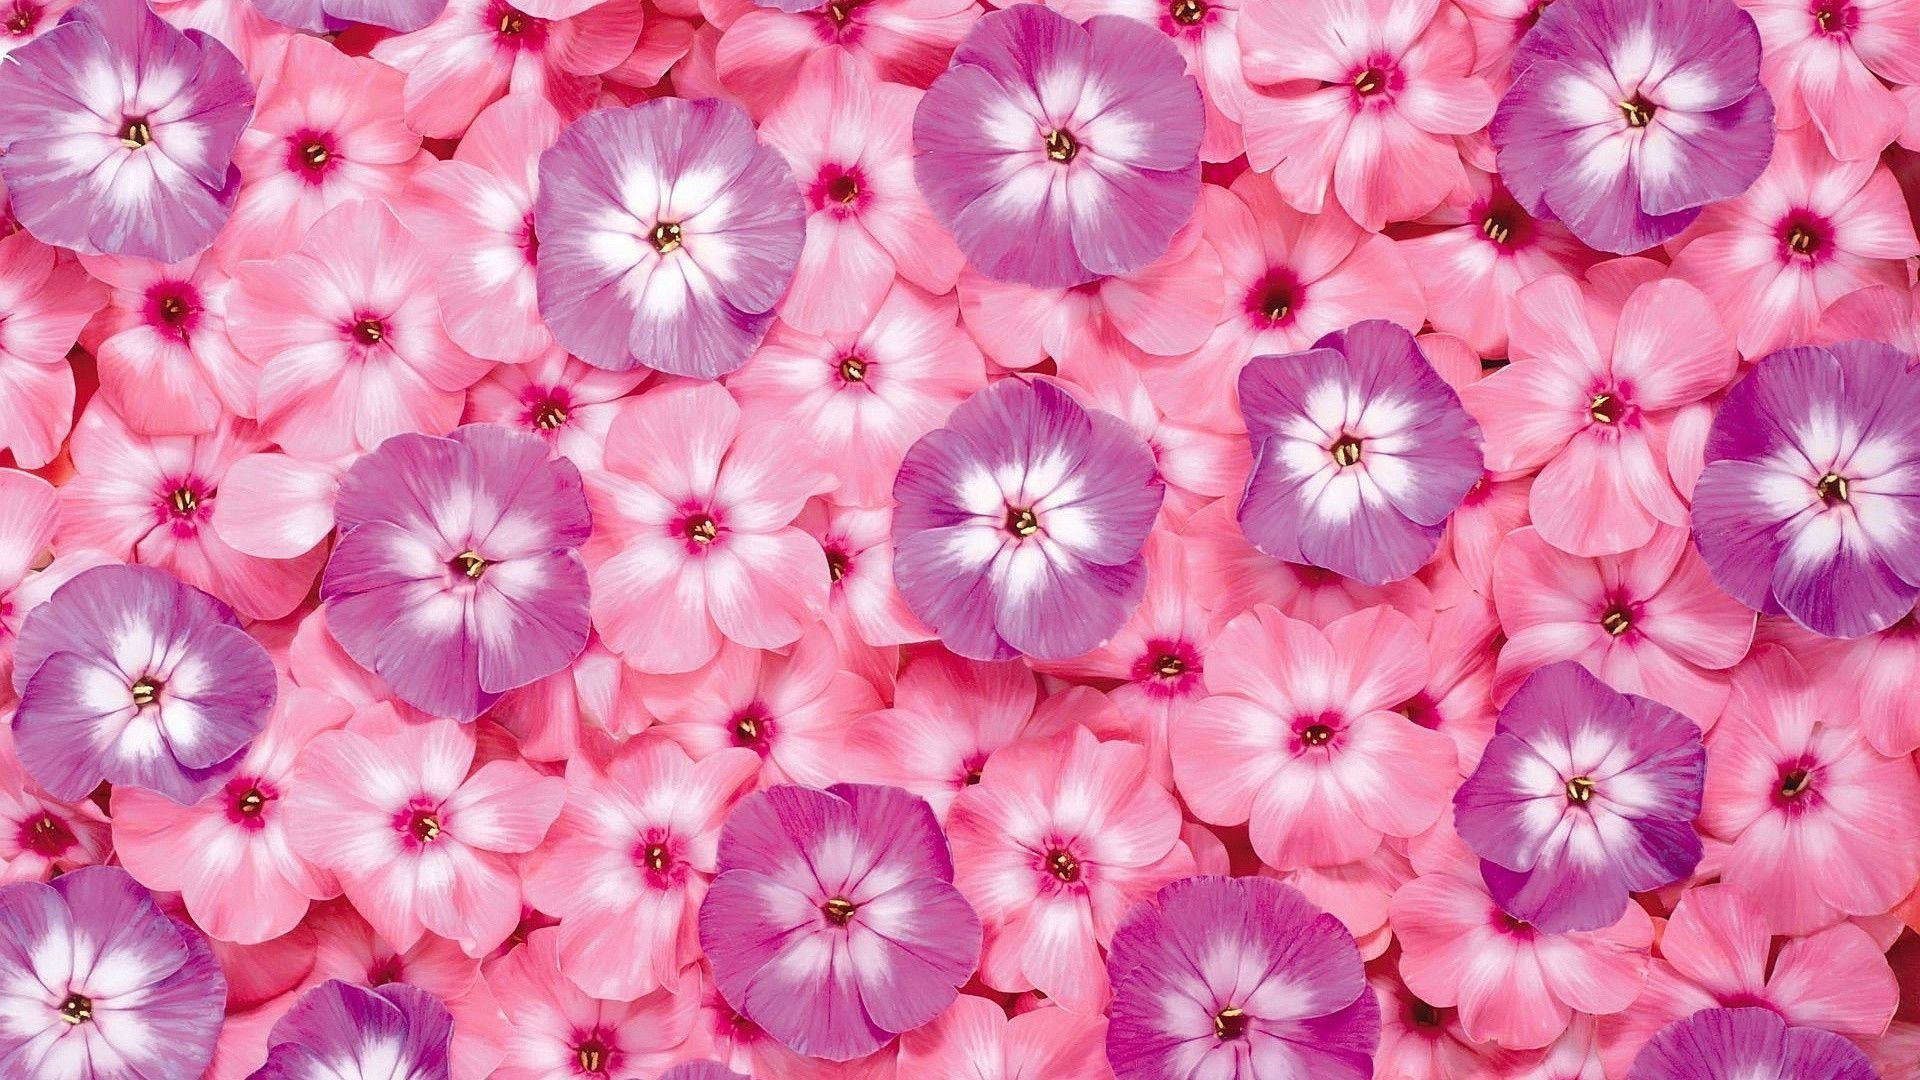 Flower Computer Backgrounds